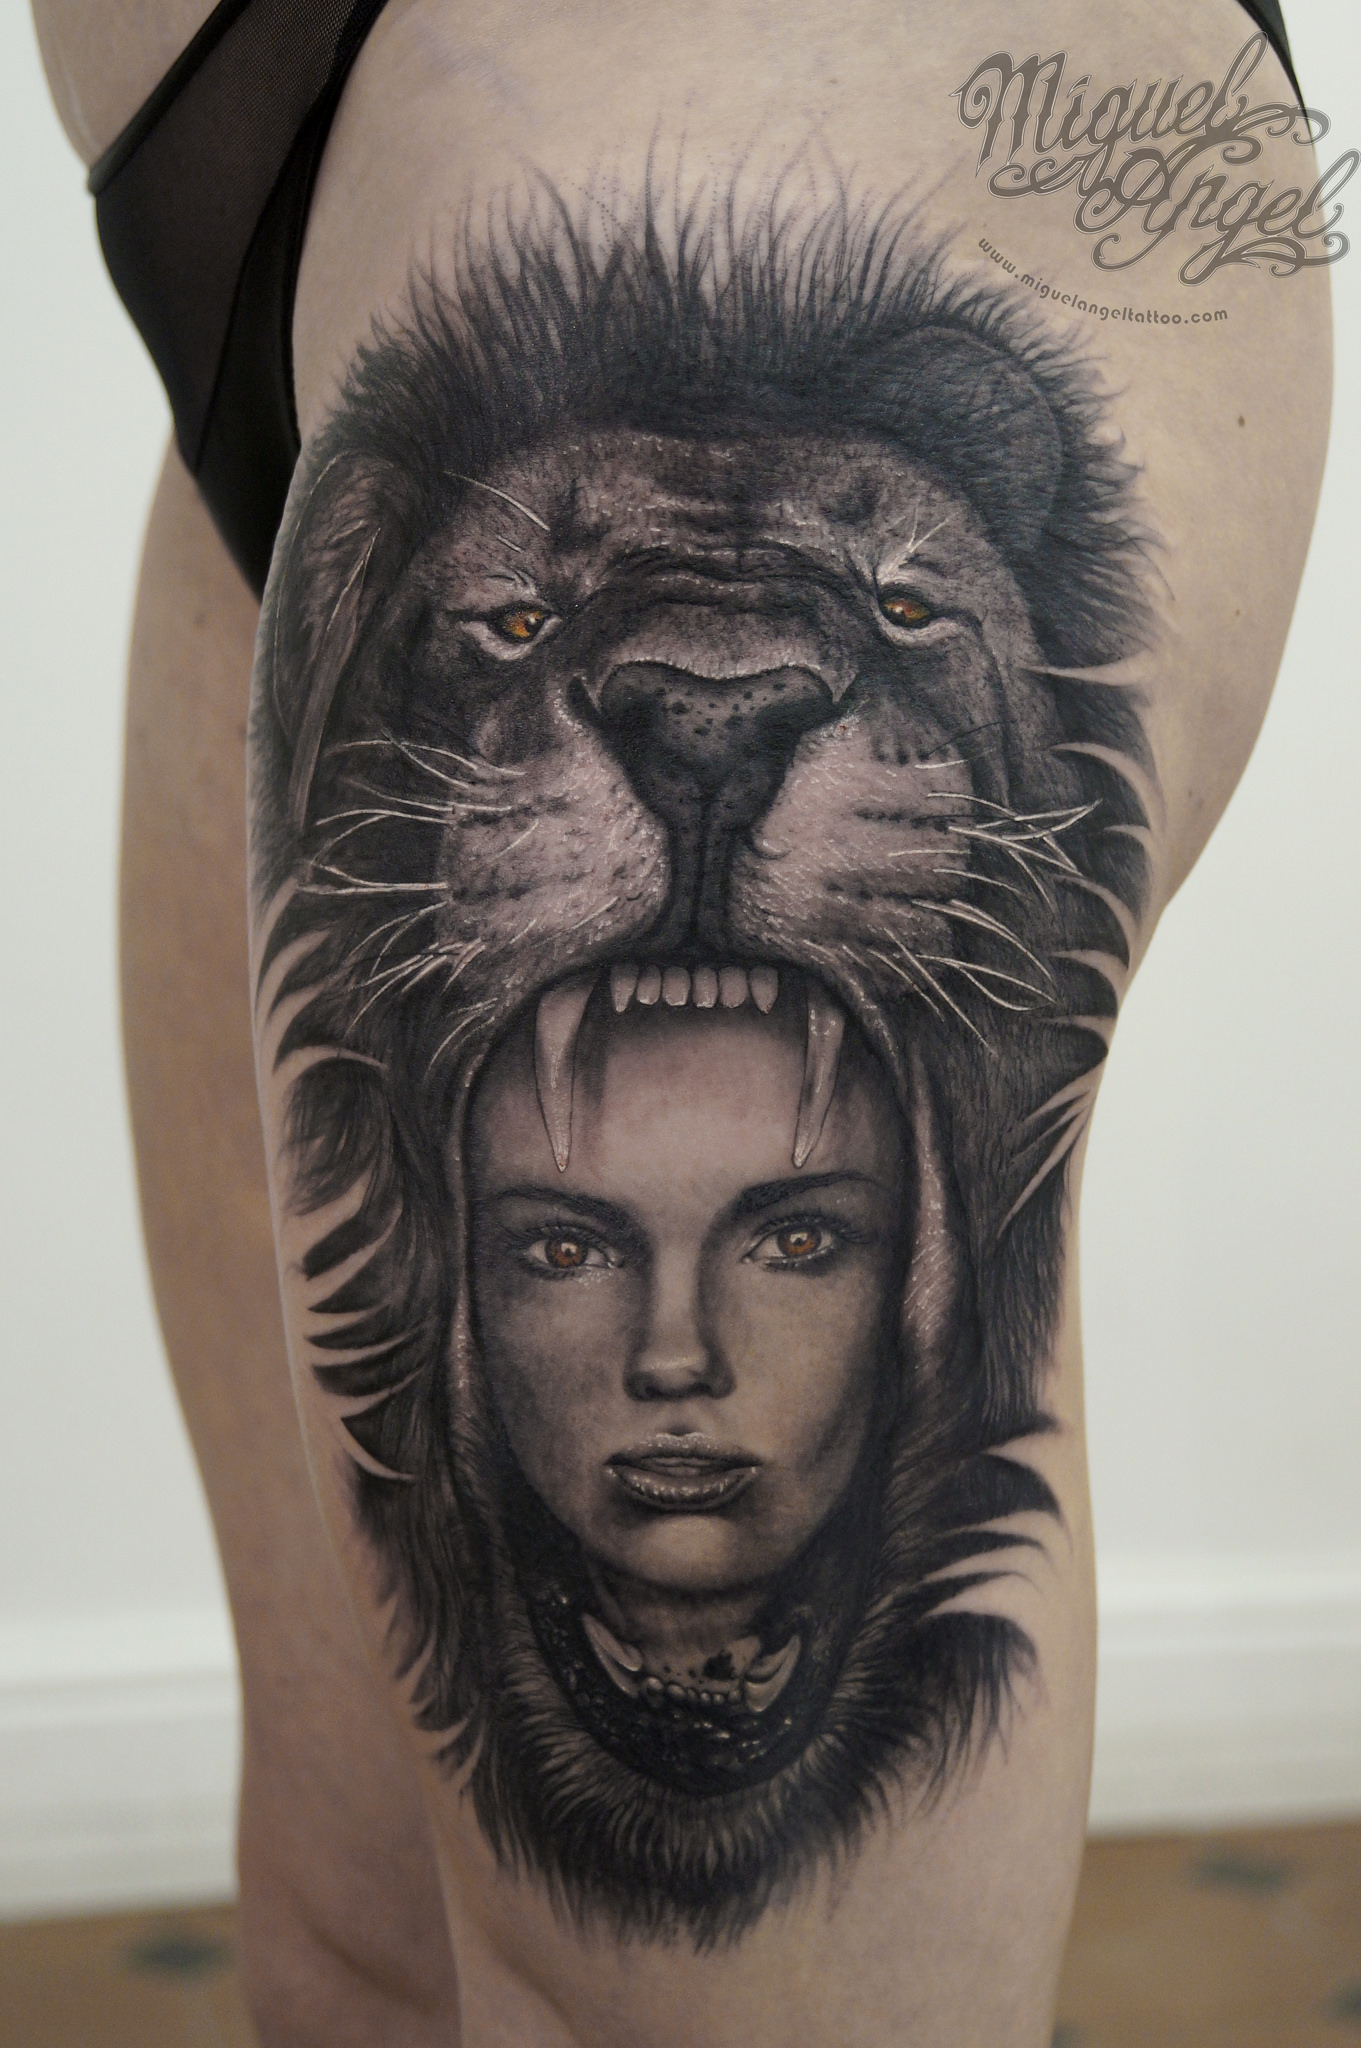 Best Cover Up Realistic Tattoos Victorian Tattoos Delicate Tattoos